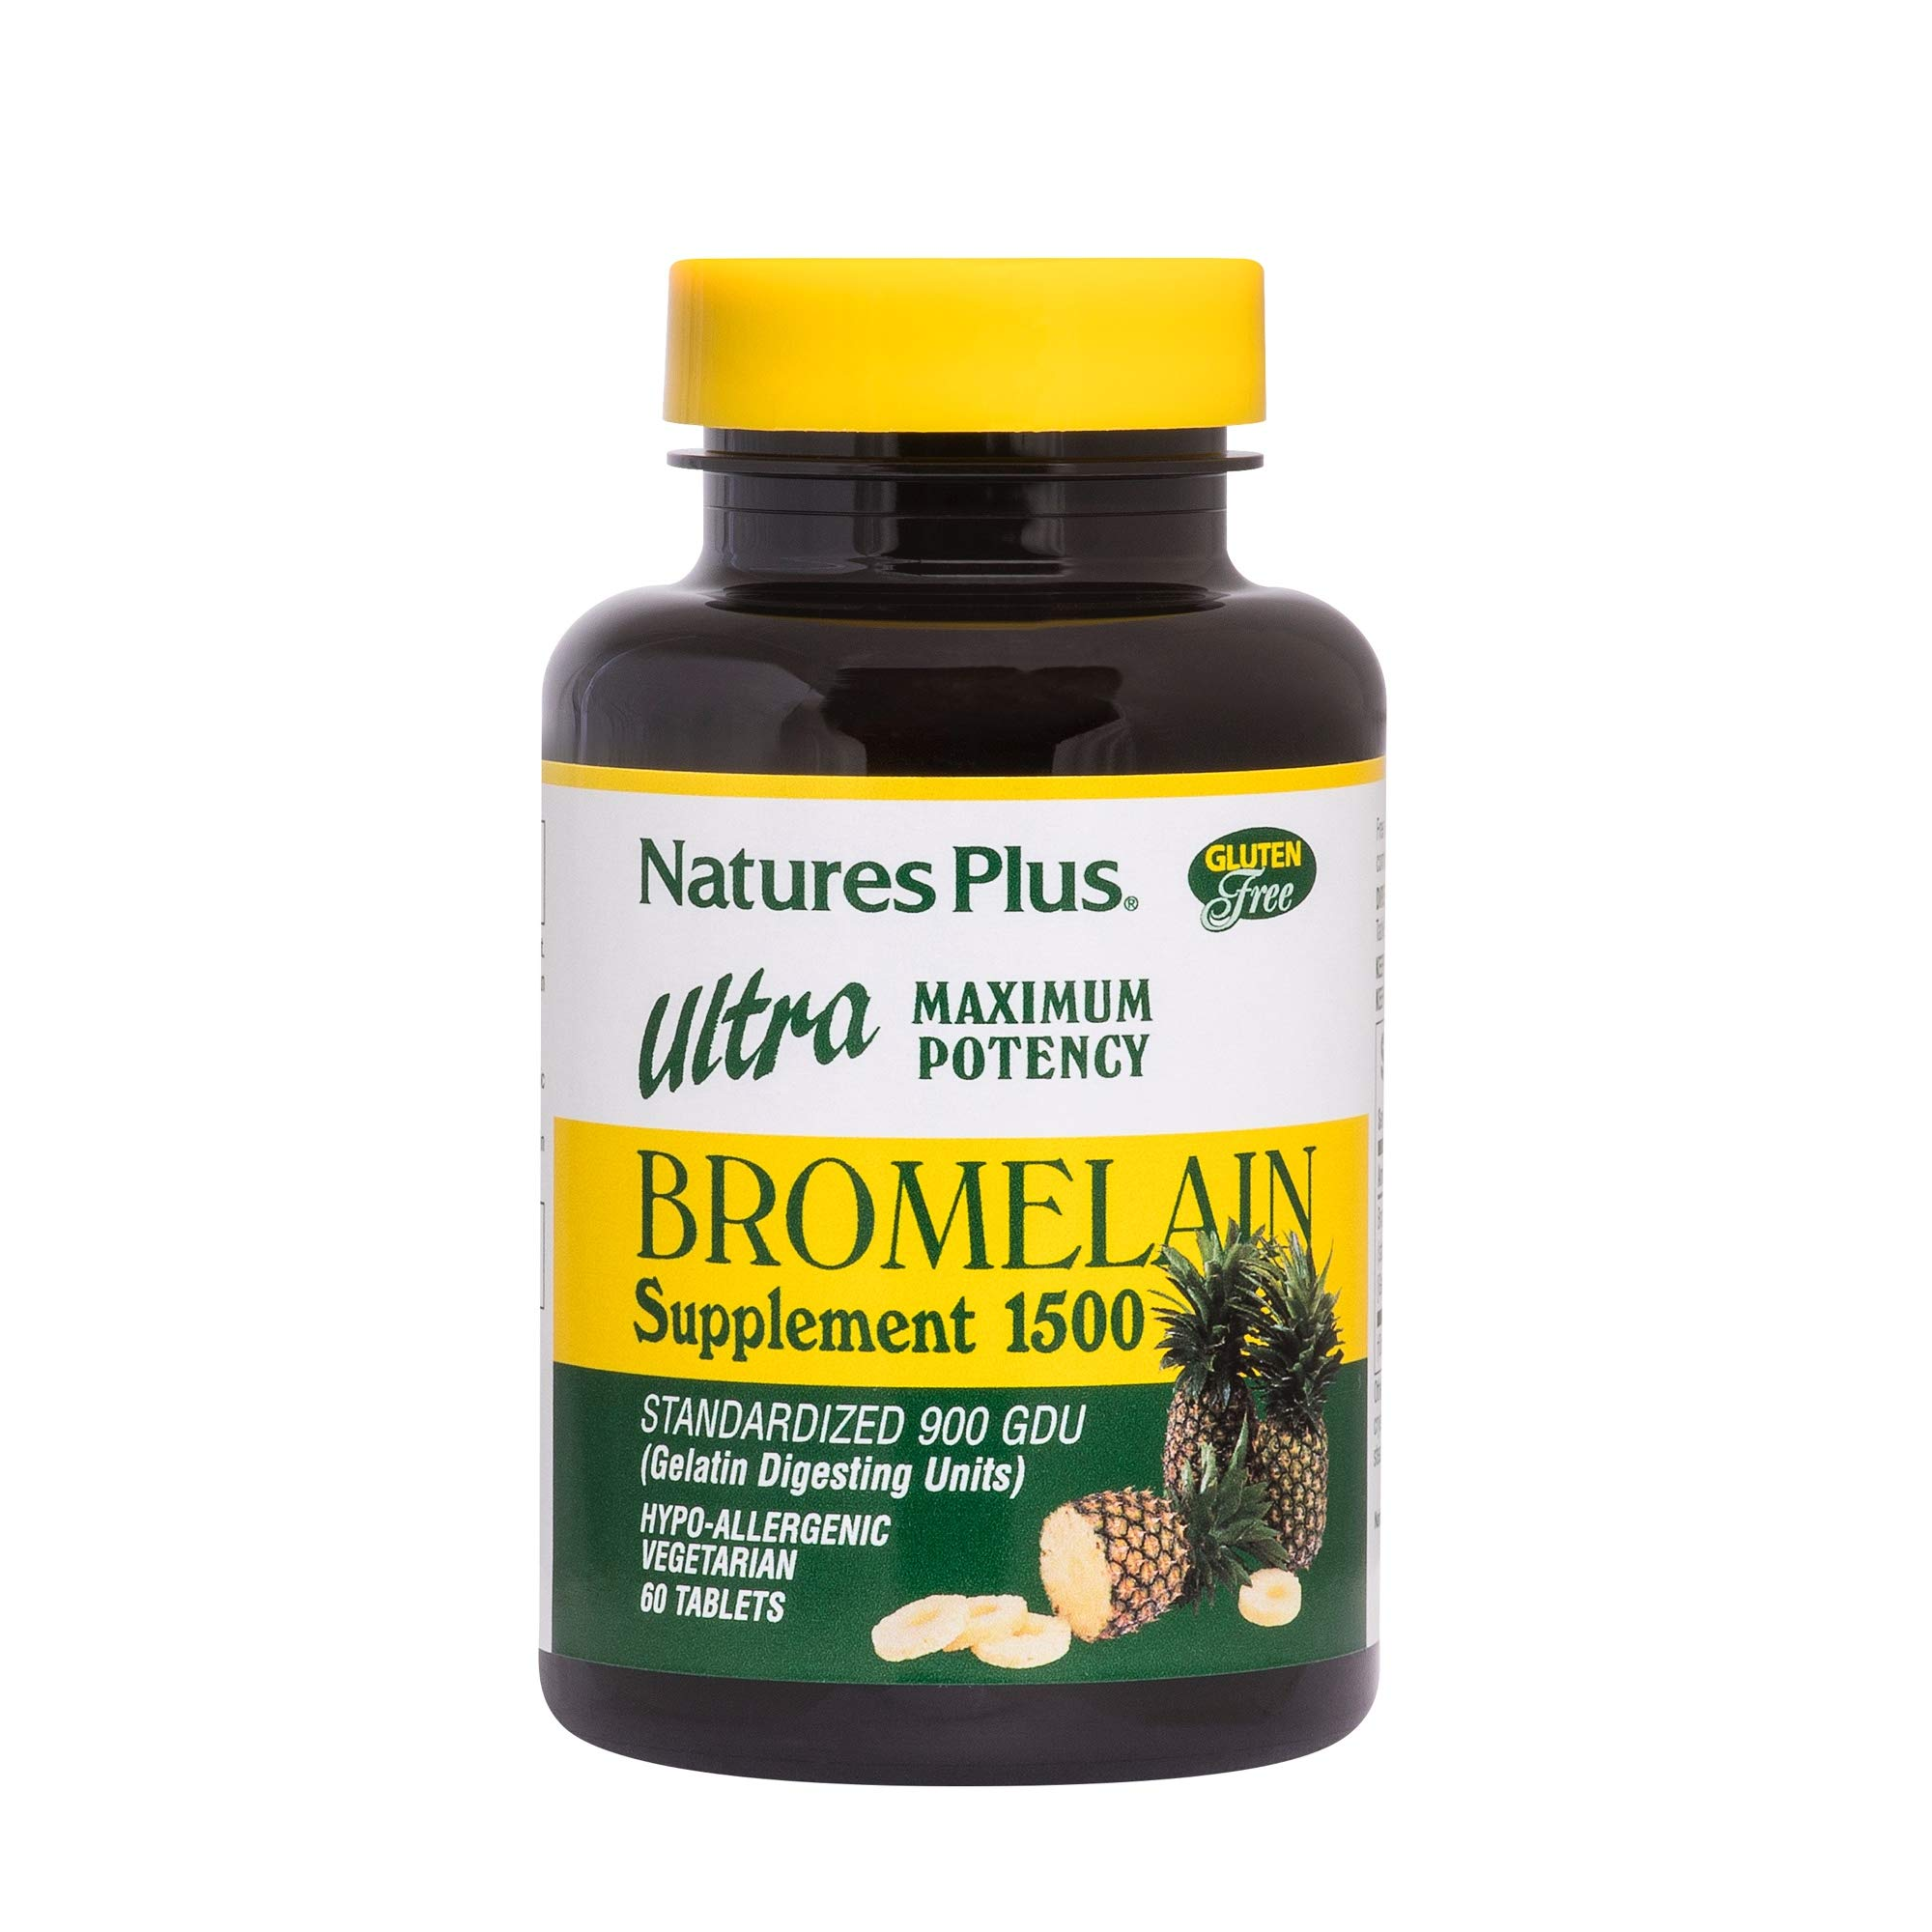 Natures Plus Ultra Bromelain 1500 (Standardized 900 GDU) - 1500 mg, 60 Vegetarian Tablets - Proteolytic Enzyme Supplement, Sinus Support Supplement, Anti Inflammatory - Gluten Free - 60 Servings